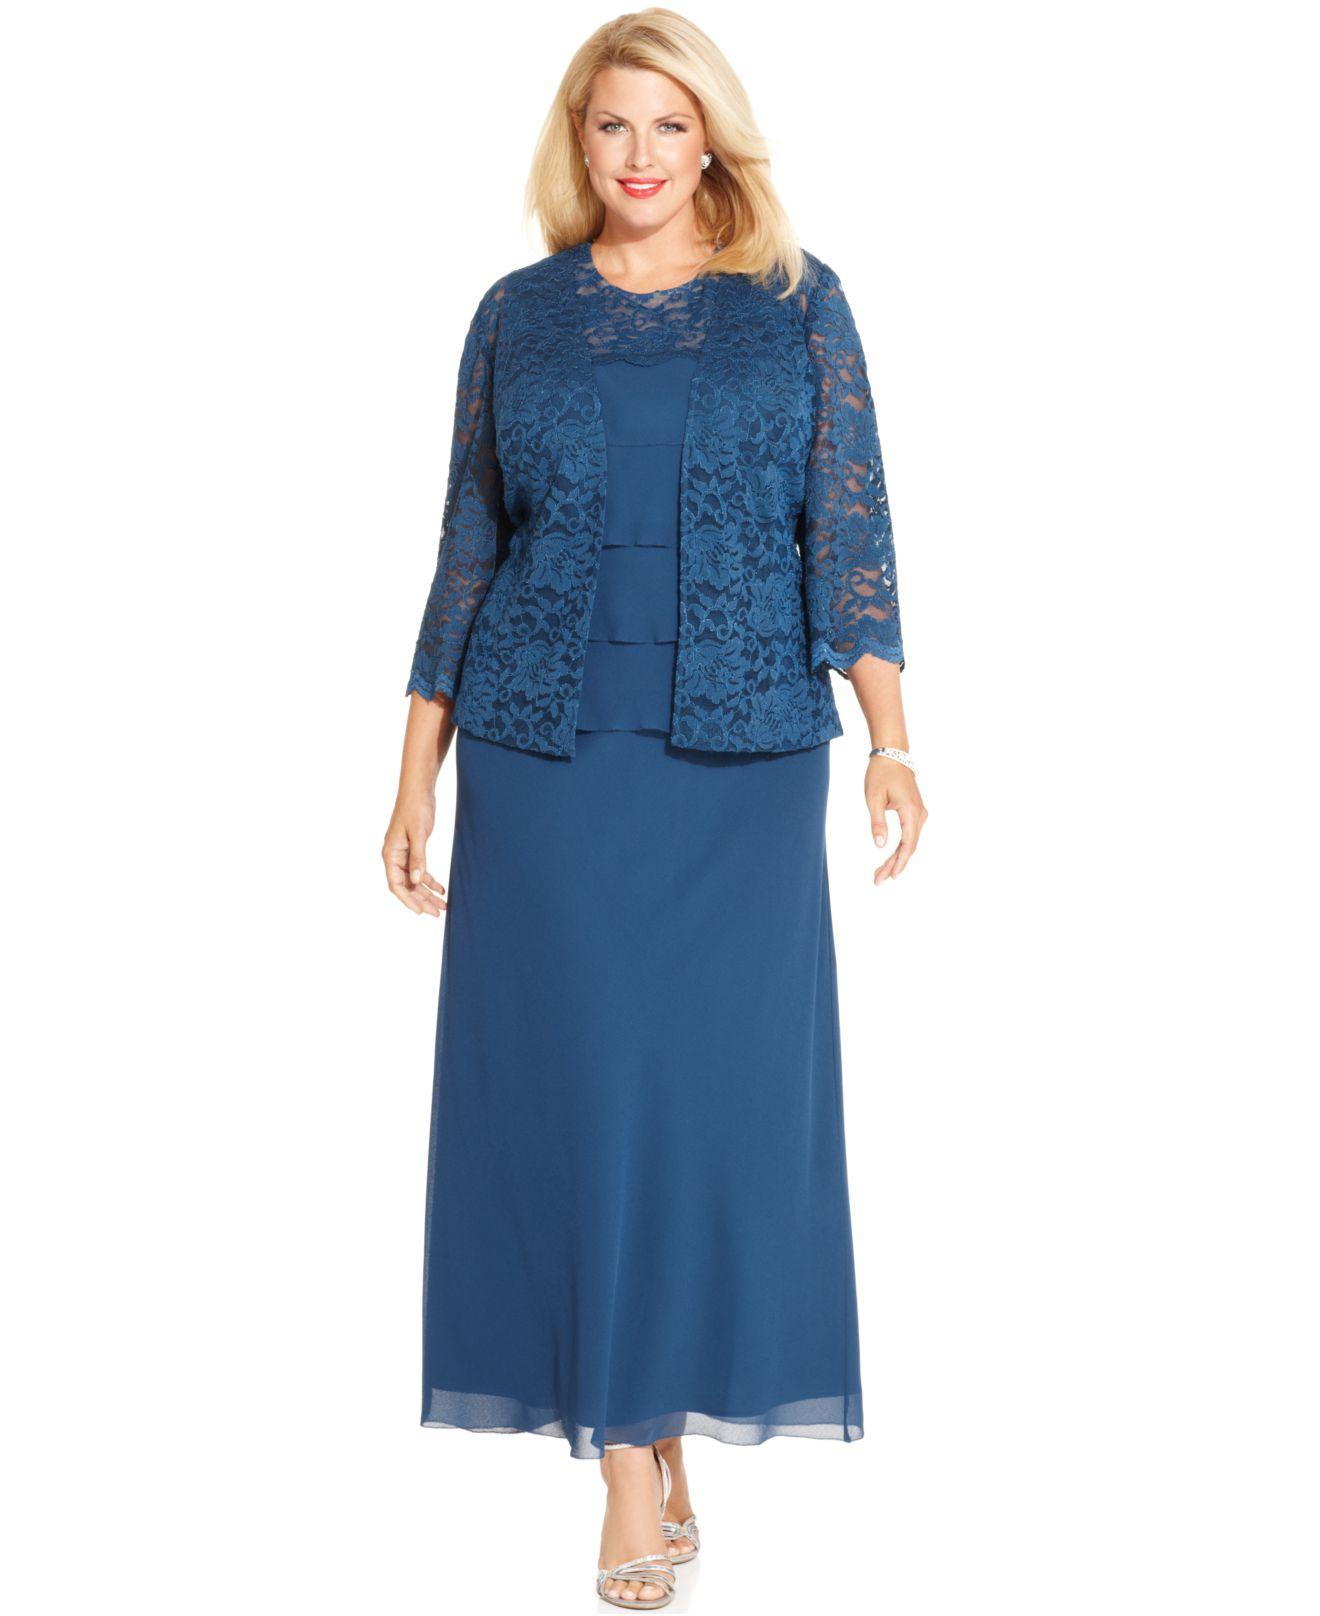 Lyst - Alex Evenings Plus Size Lace Tiered Dress And Jacket in Blue